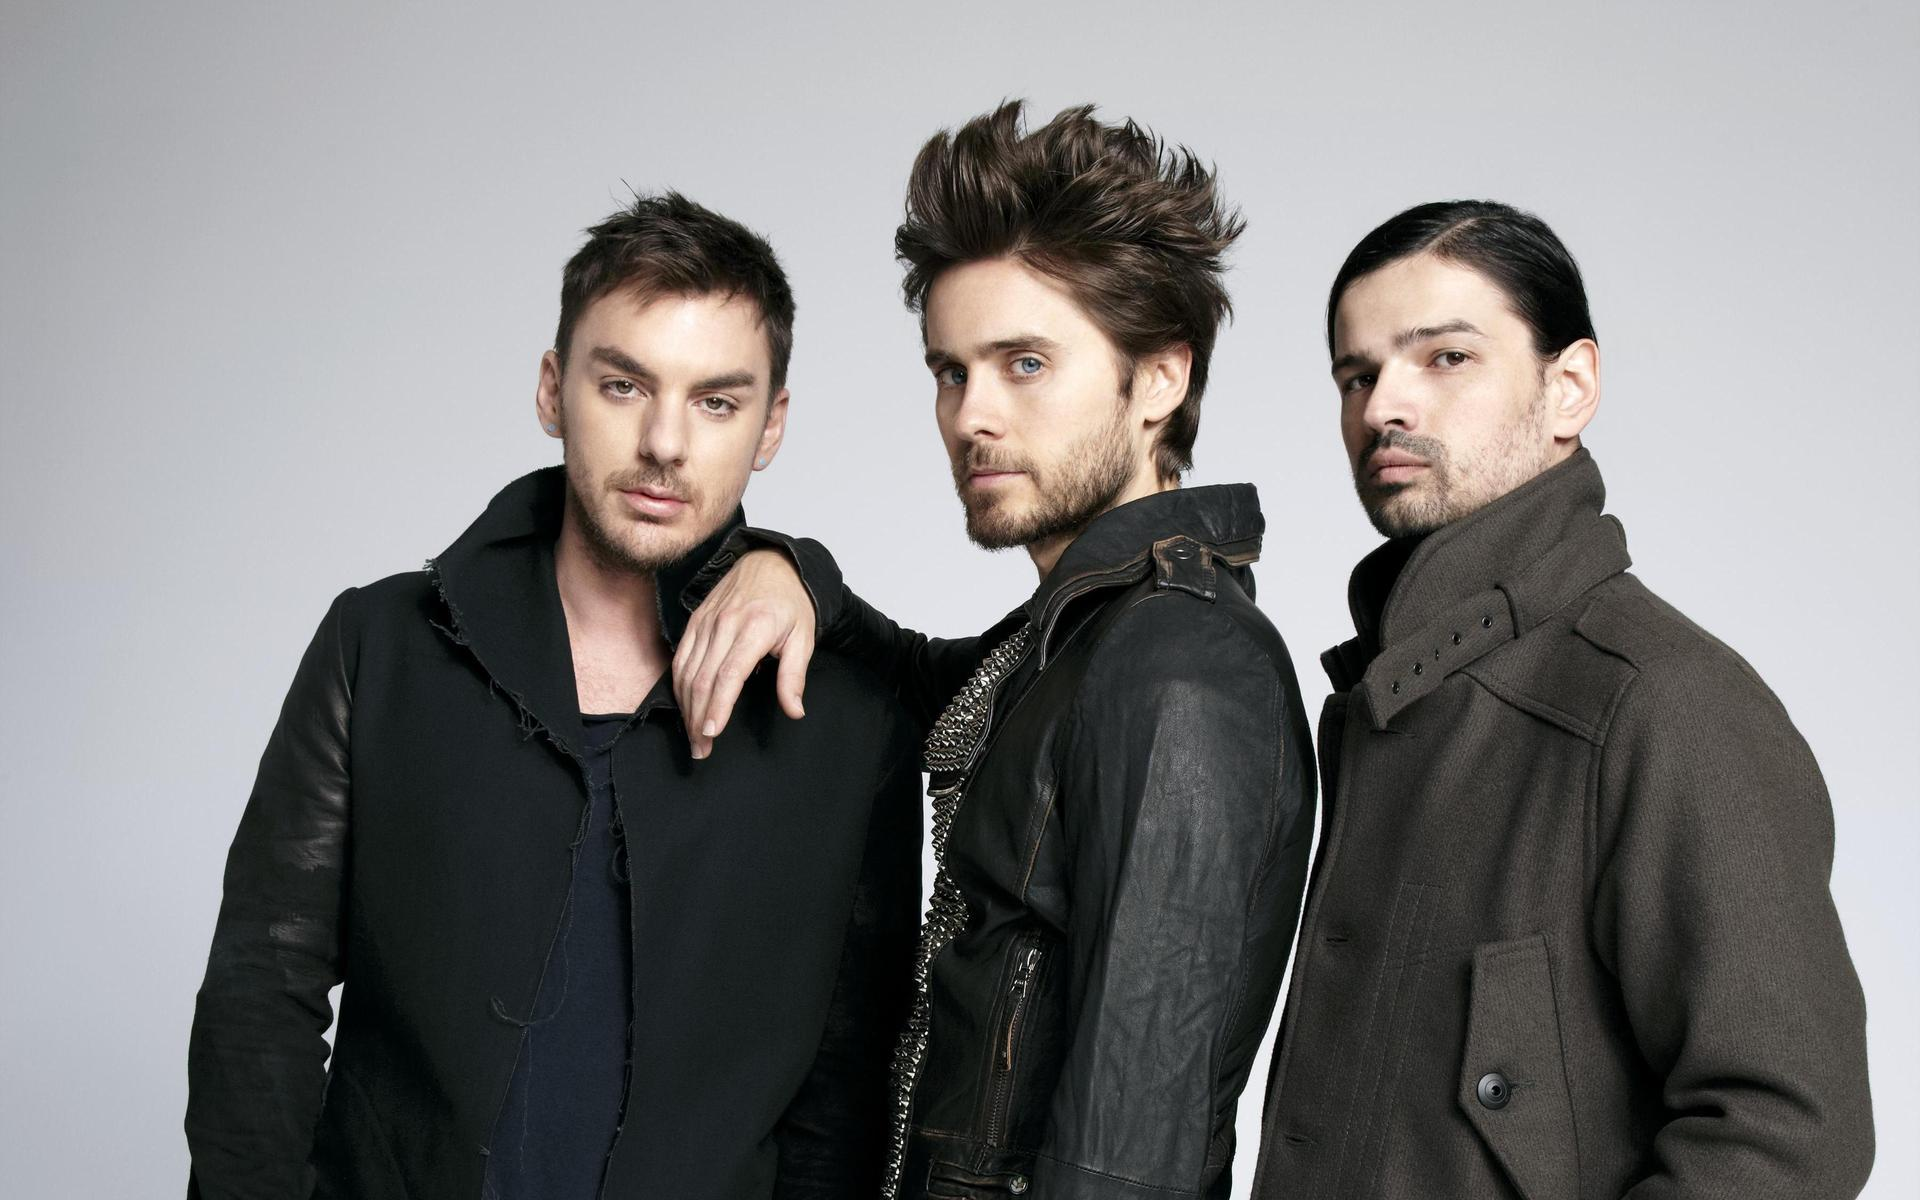 Jared Leto 30 Seconds To Mars Wallpaper Jared Leto 30 Seconds ...